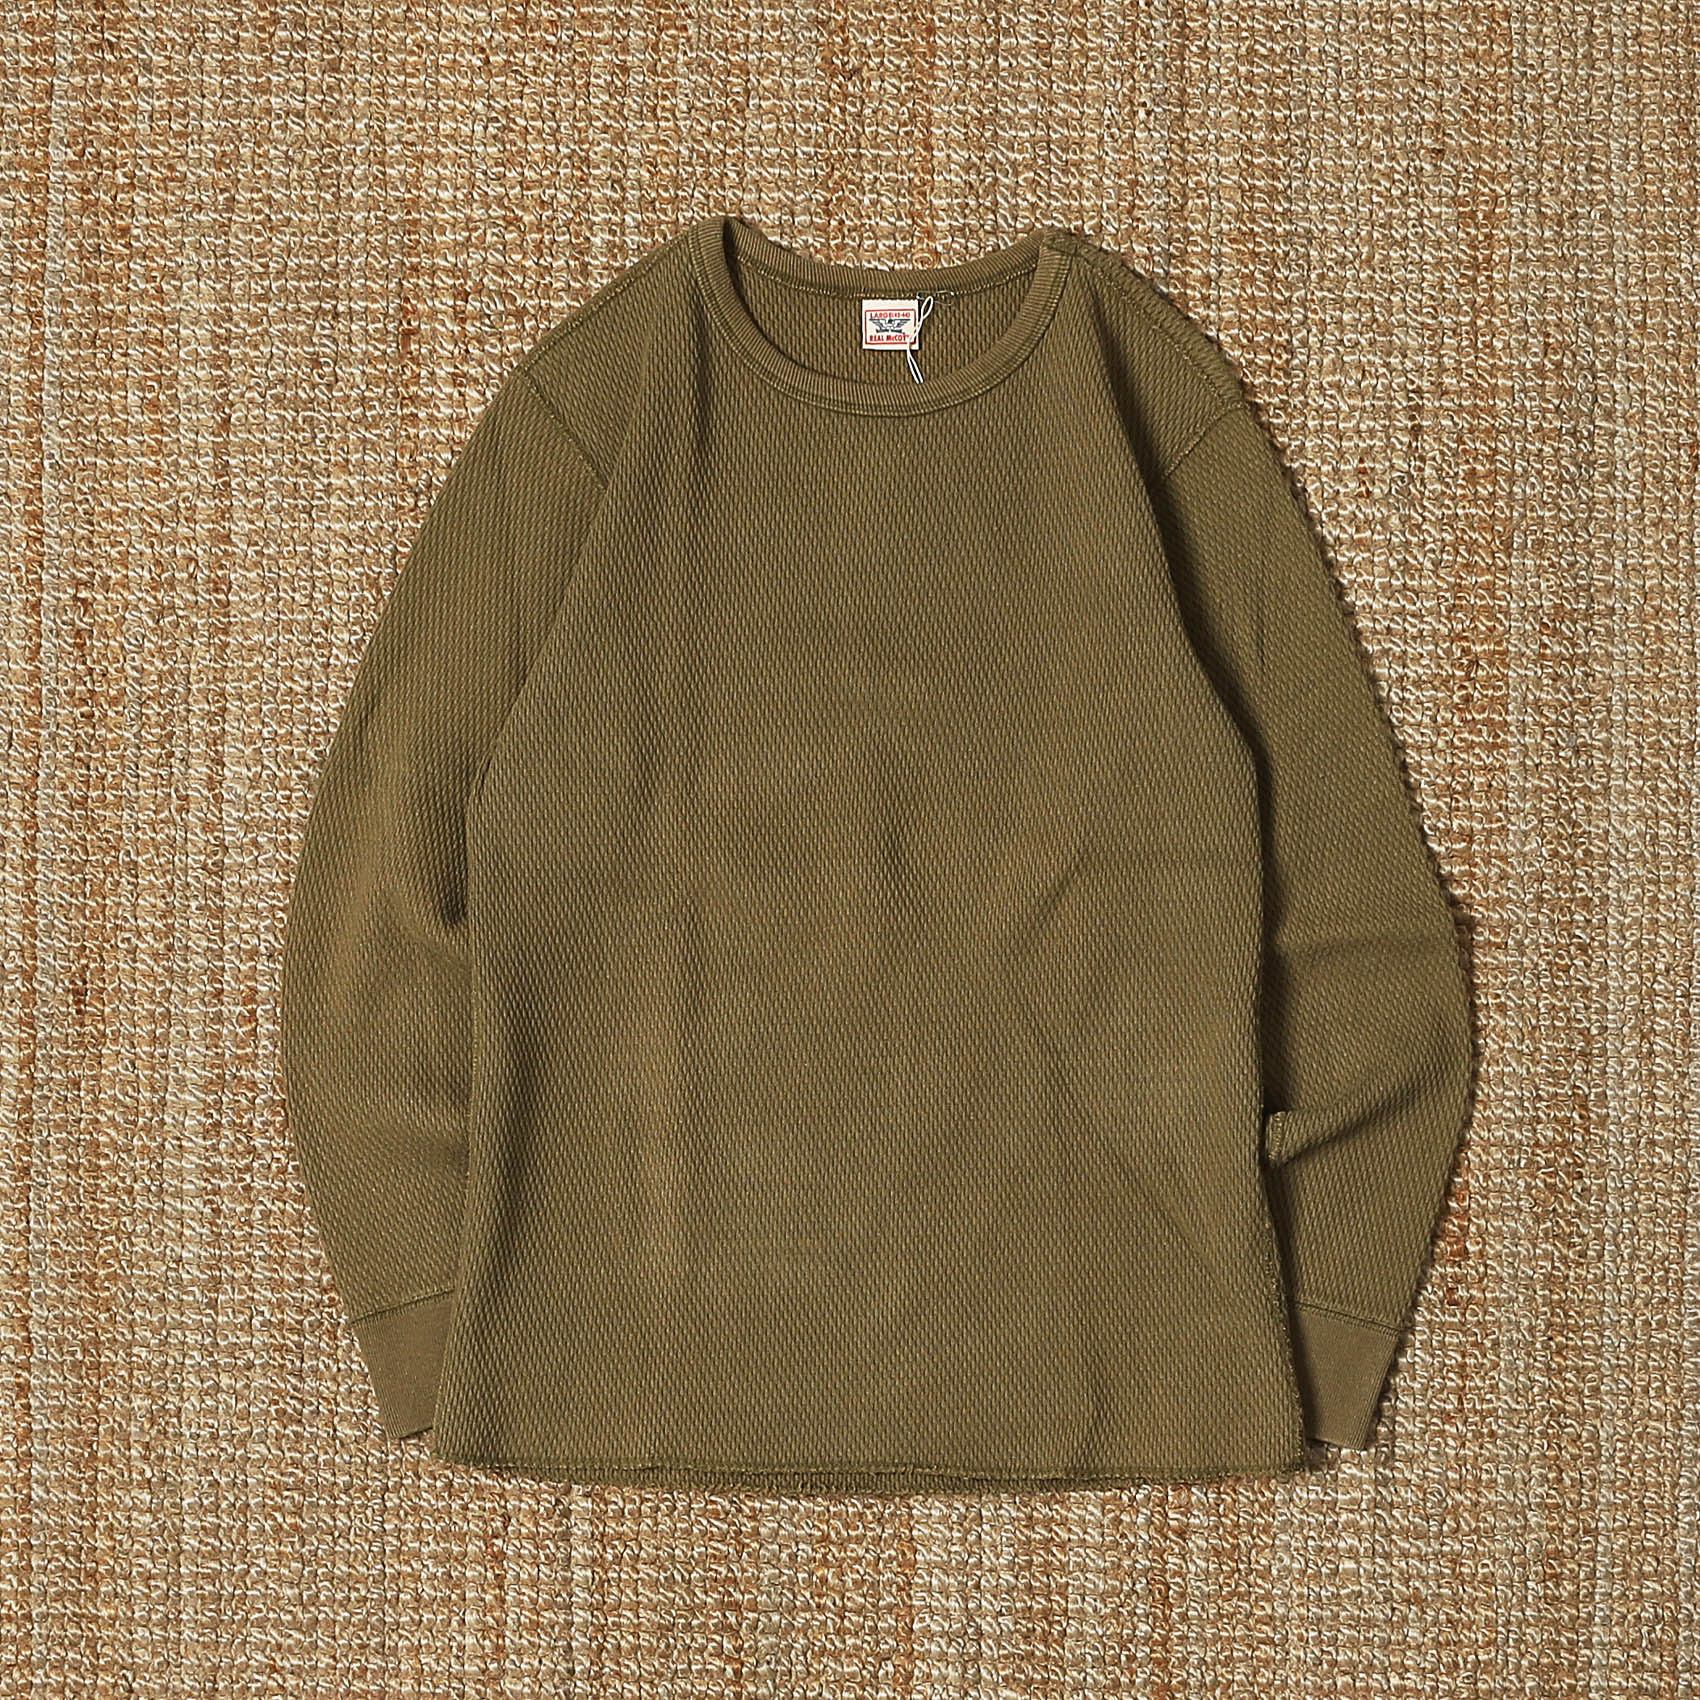 THE REAL MCCOY'S THERMAL T SHIRT - KHAKI